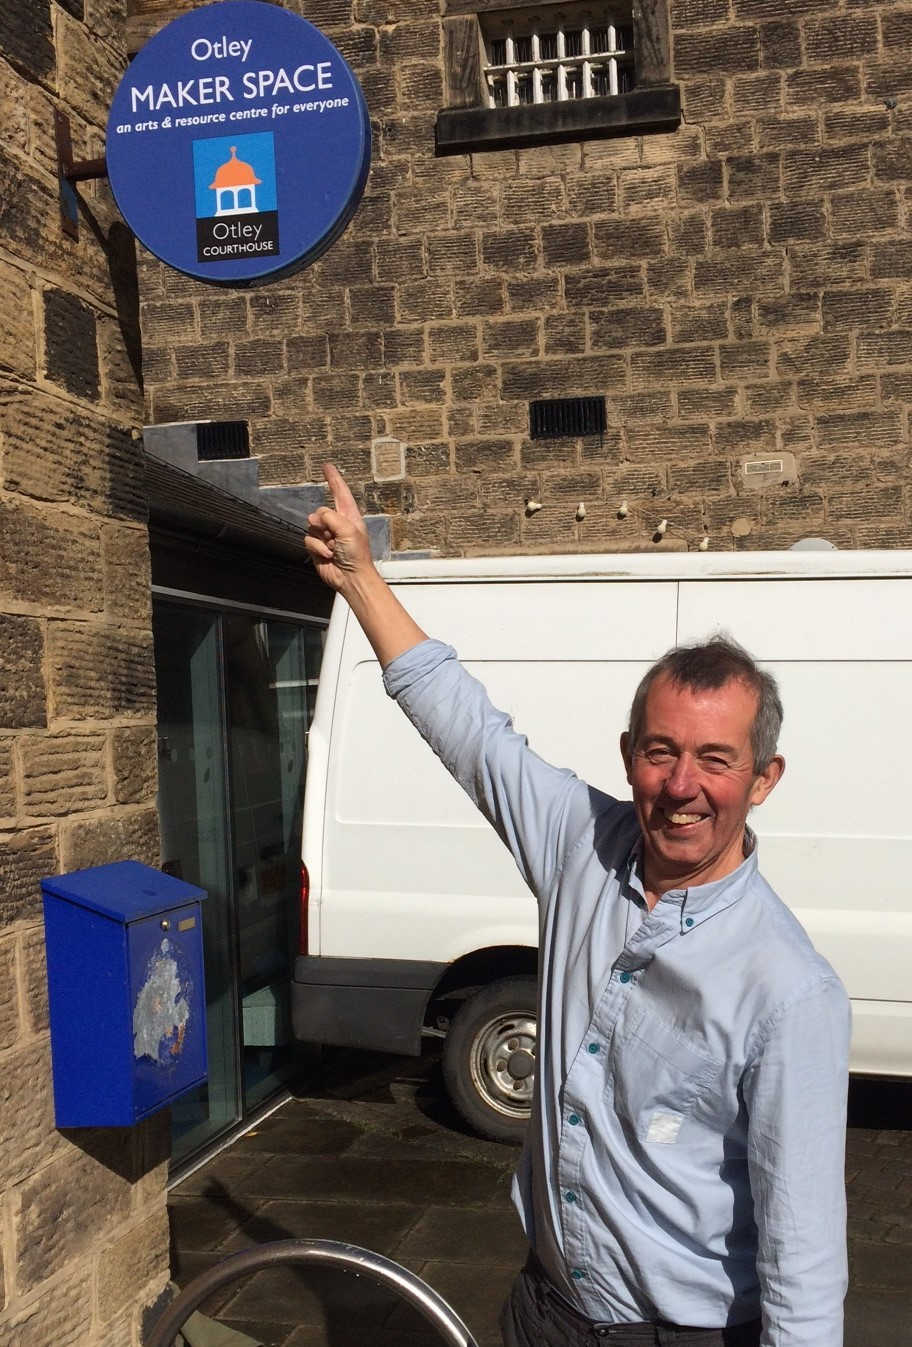 Looking forward to the opeining of Otley Maker Space - Otley Courthouse Chair David Robson